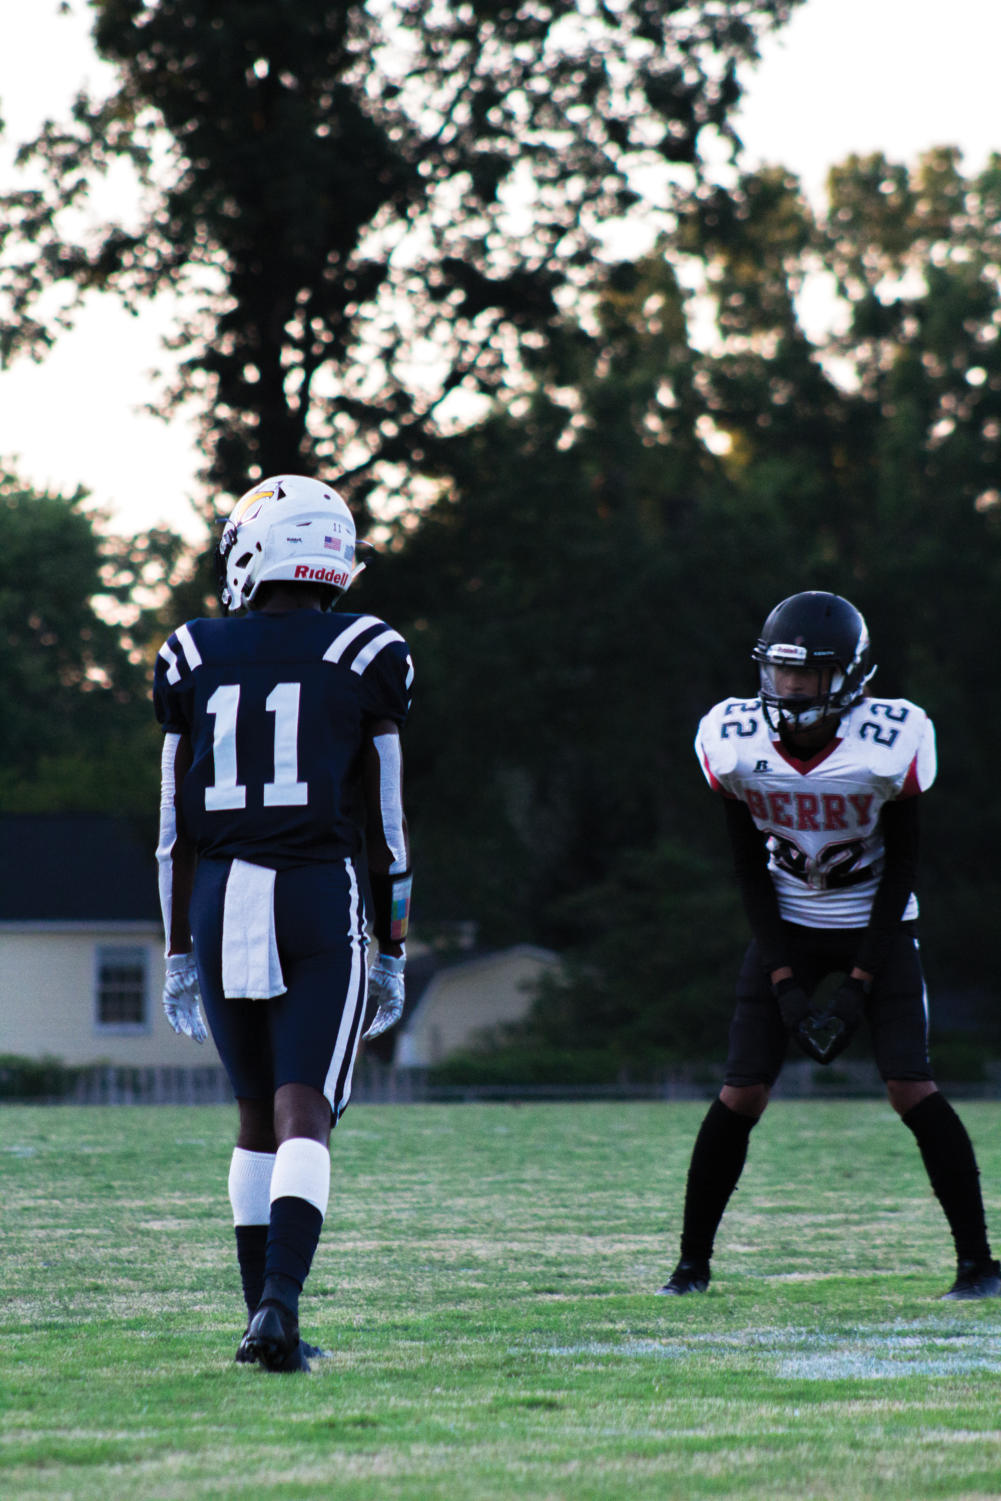 Marques Fleming (#11) lines up on the line of scrimmage ready to make a play.